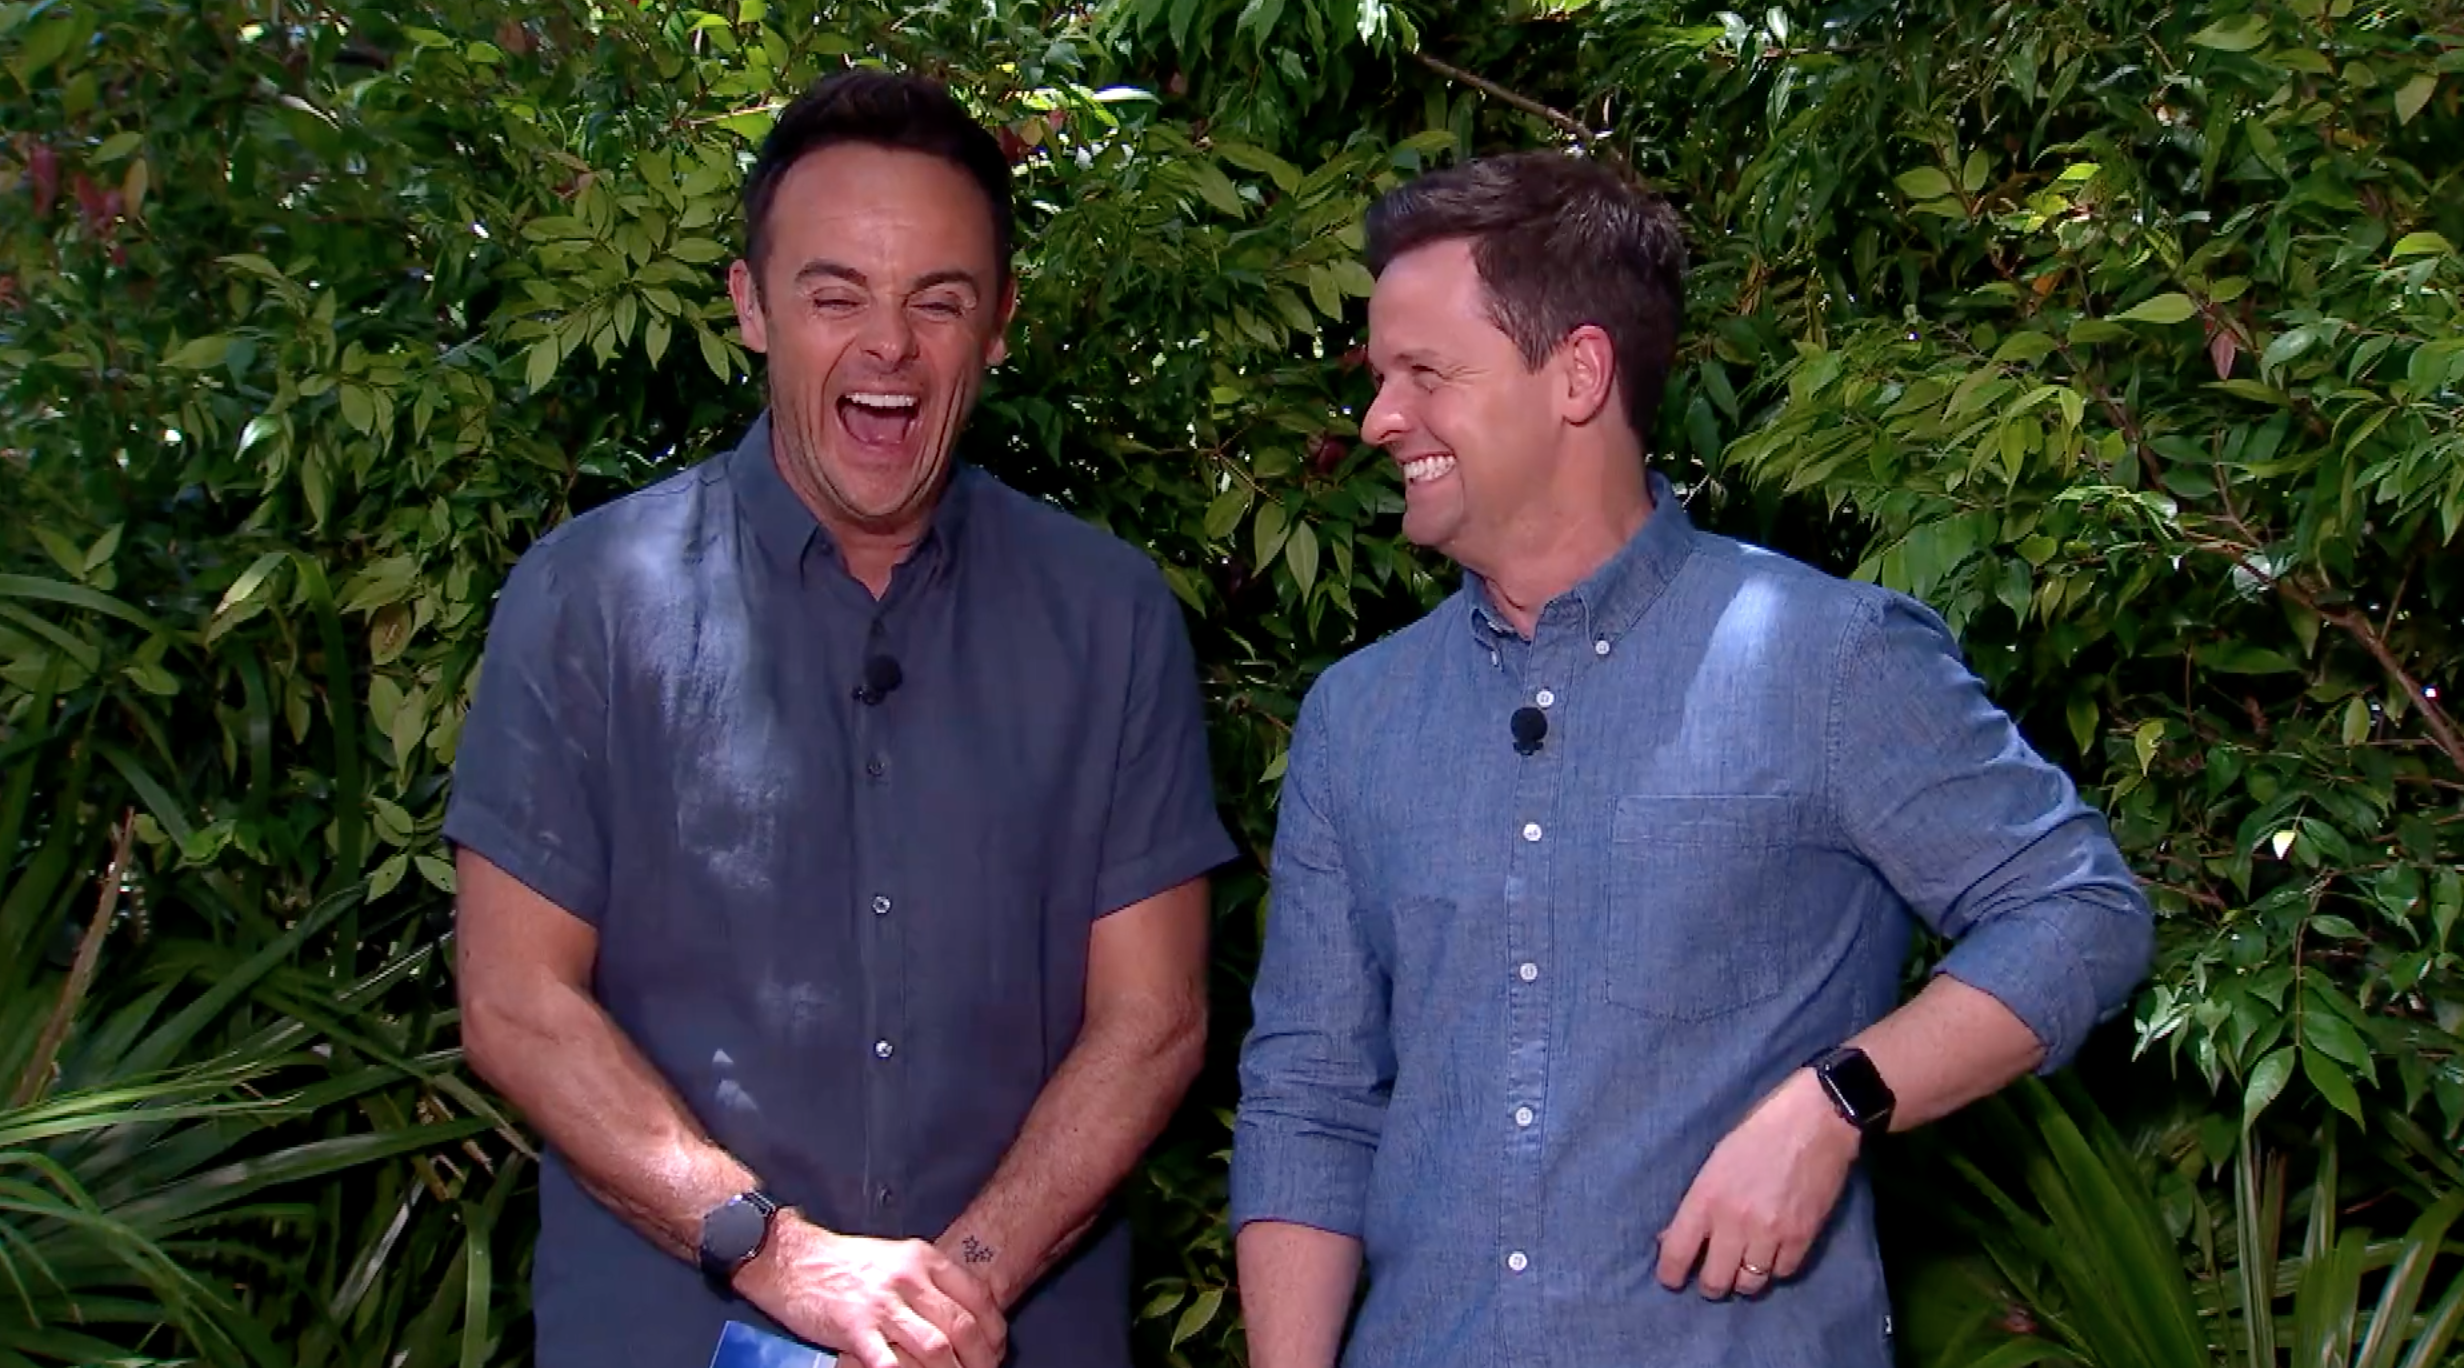 Ant and Dec leave I'm A Celebrity fans confused with photo of them enjoying downtime away from filming